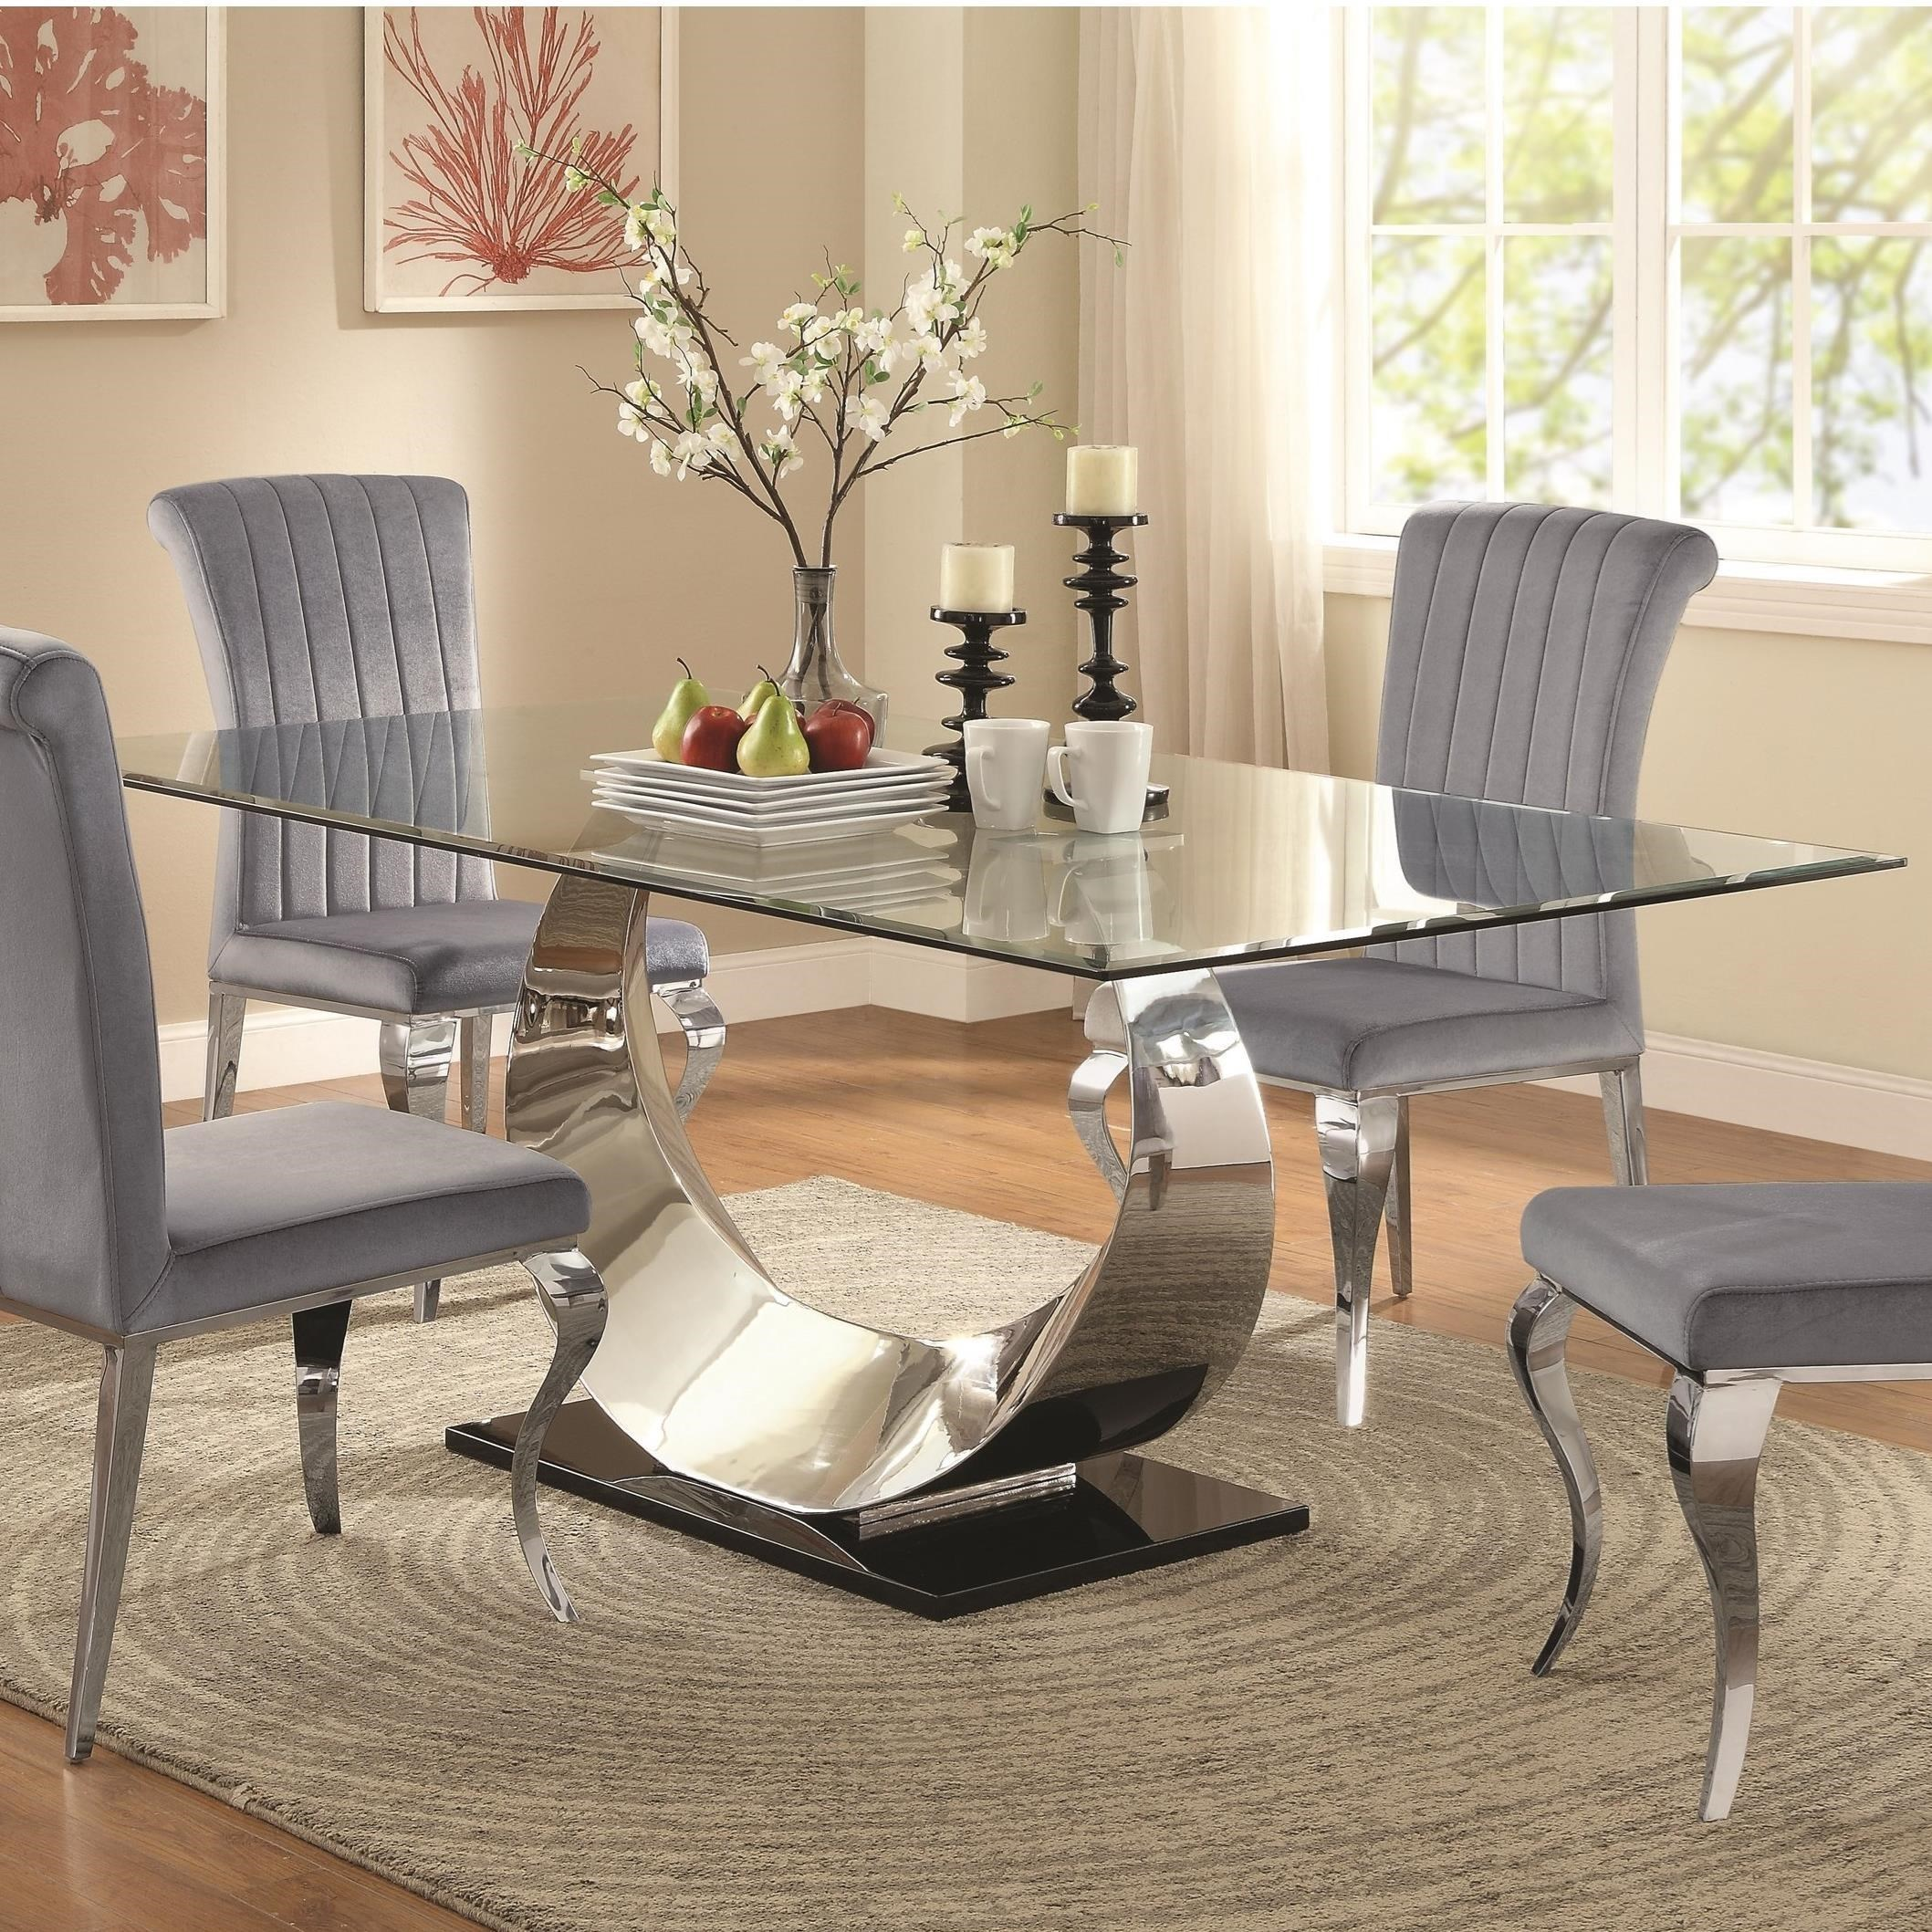 Attirant Coaster Manessier Contemporary Glass Dining Table